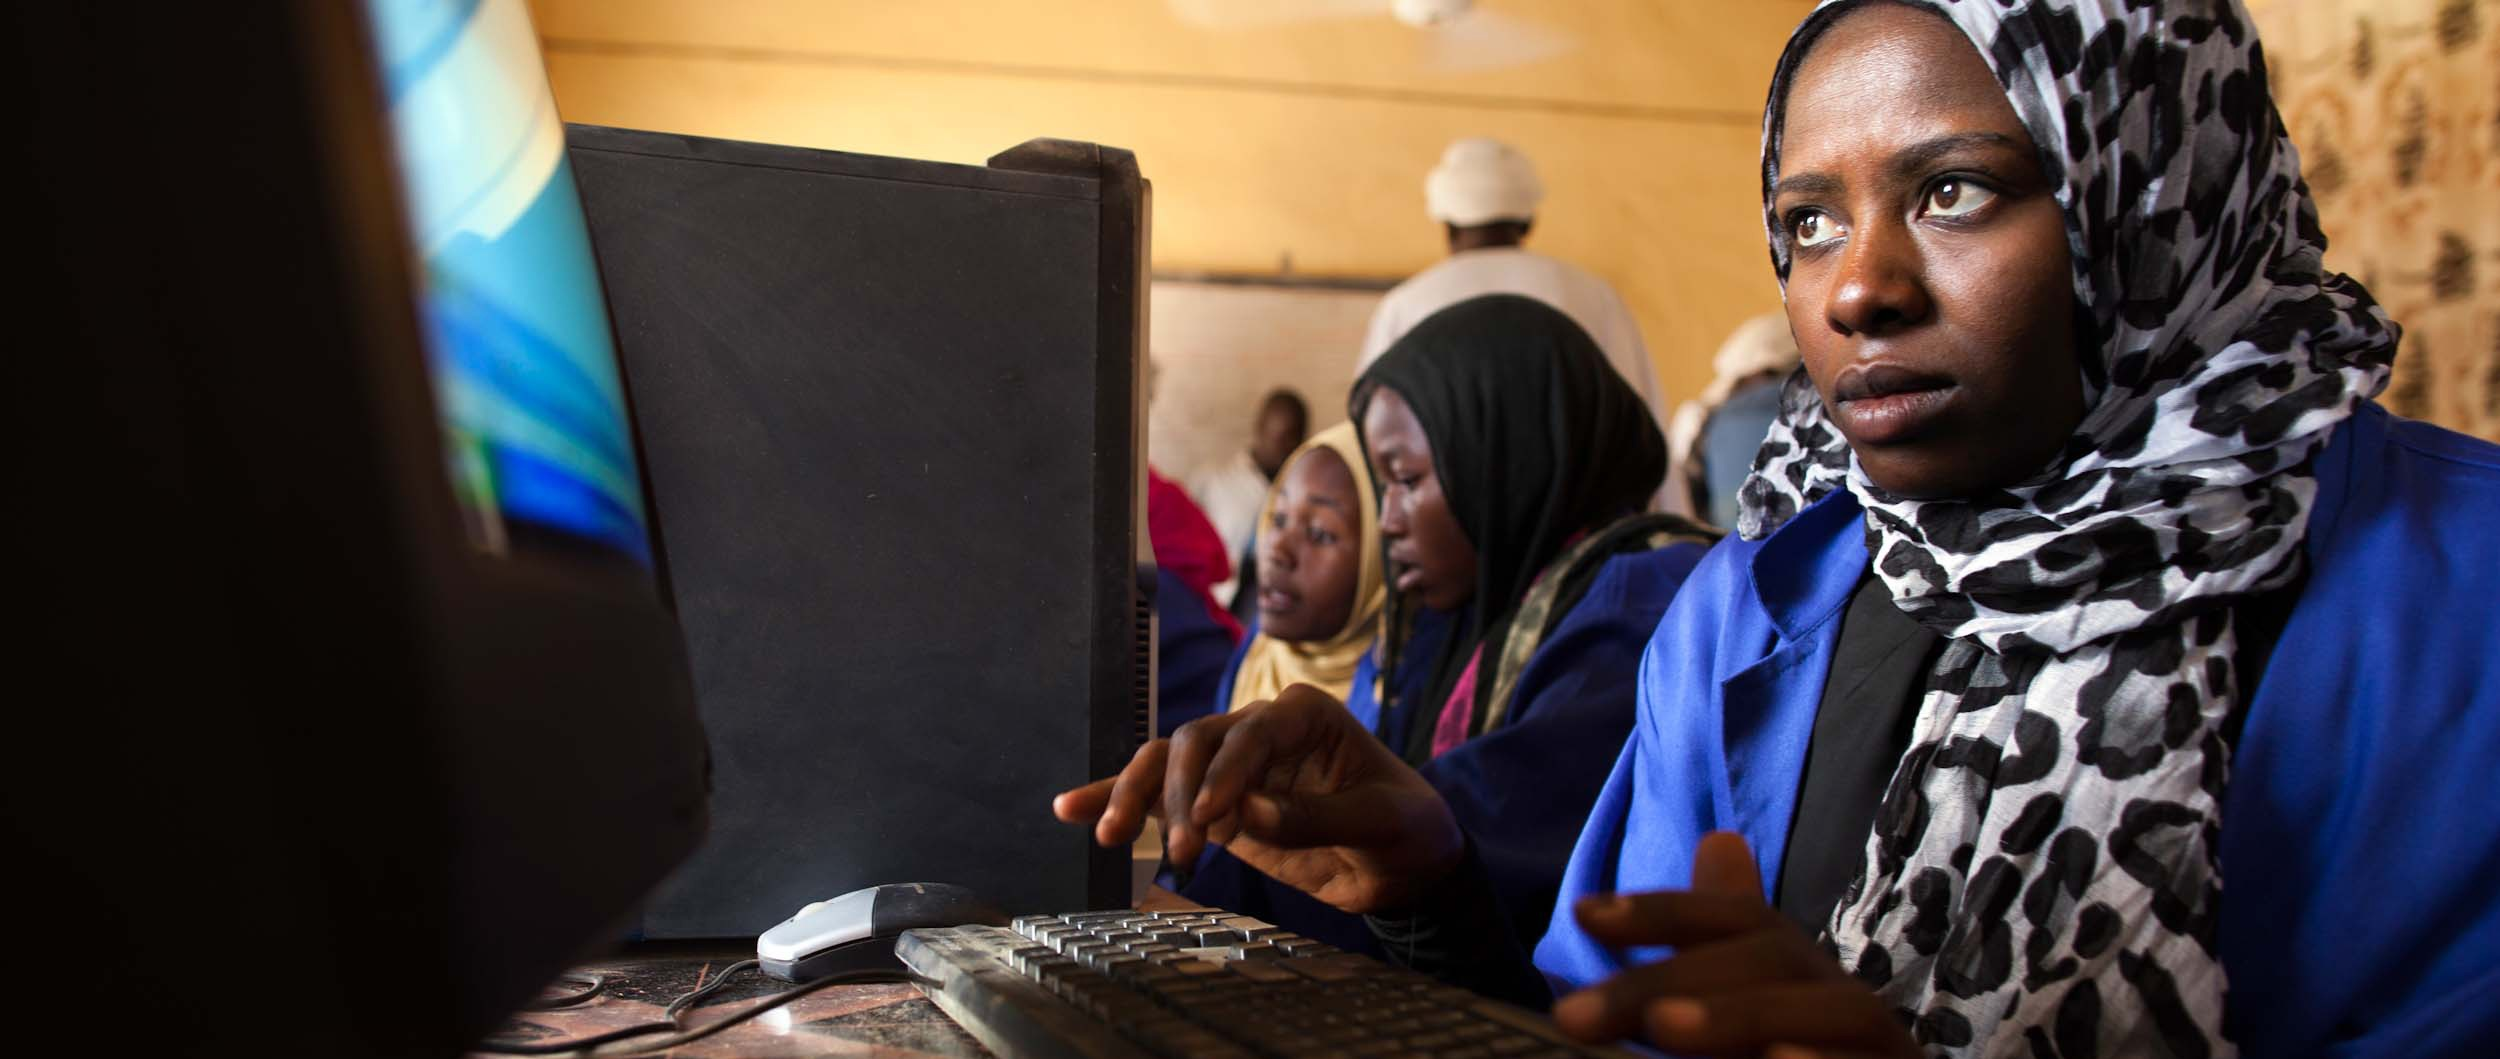 10 Great Ways the Internet is Empowering Women Around the World Thumbnail